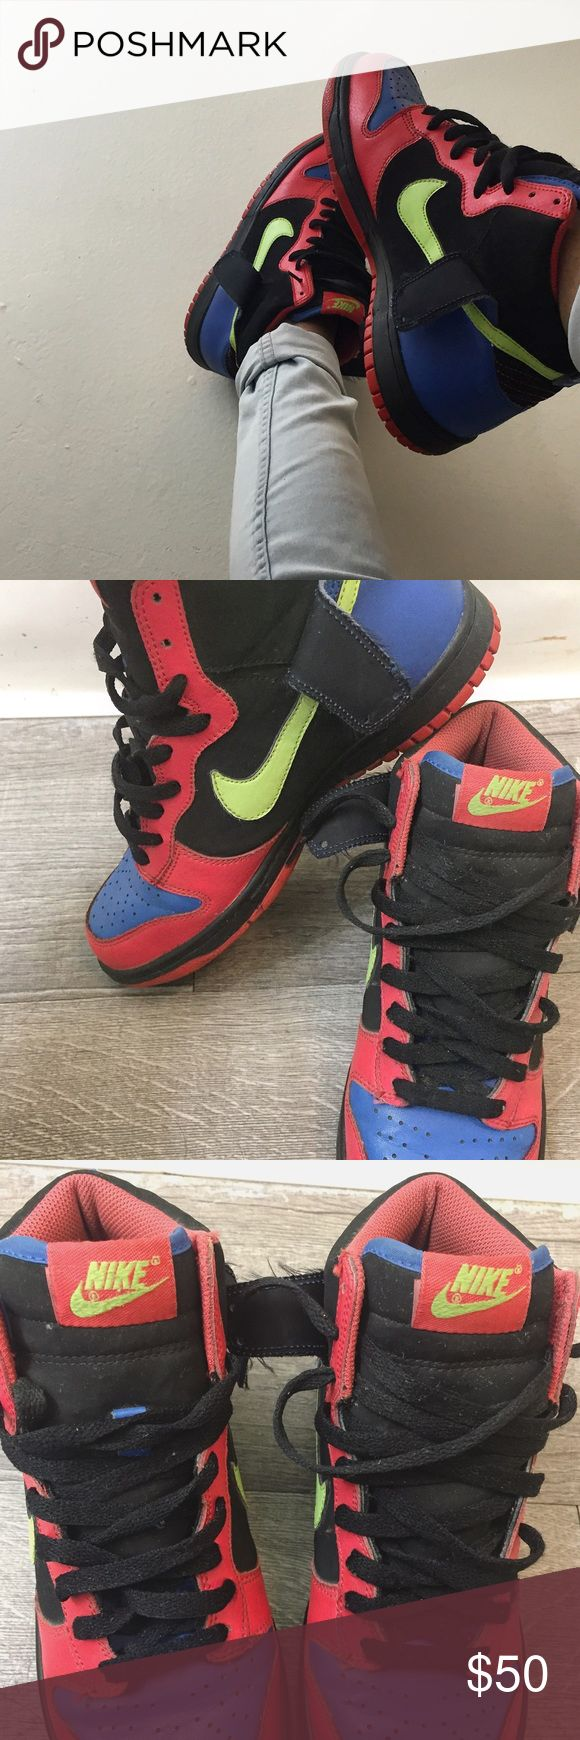 Mid-top Neon Nikes 1's neon 💖💚💙midtop #Nikes  💳$40 size 8.5  worn but good condition 🆗🆒except for the creases in the front (which i will provide care information upon purchase) Nike Shoes Athletic Shoes